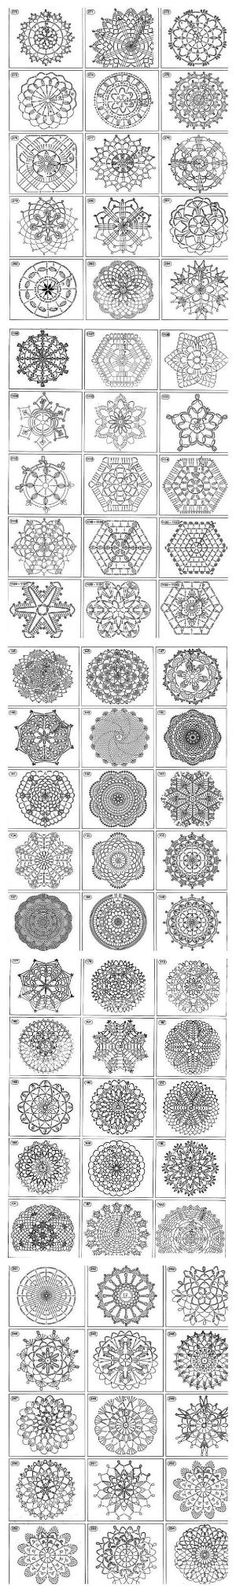 Over 1400 free crochet motif, afghan squares, coasters, snowflakes, doilies, triangles stitch chart diagram patterns. Great for baby blankets, afghans, table cloths, towel edging, Christmas. ornaments etc. by Sara-Marie Coetzee